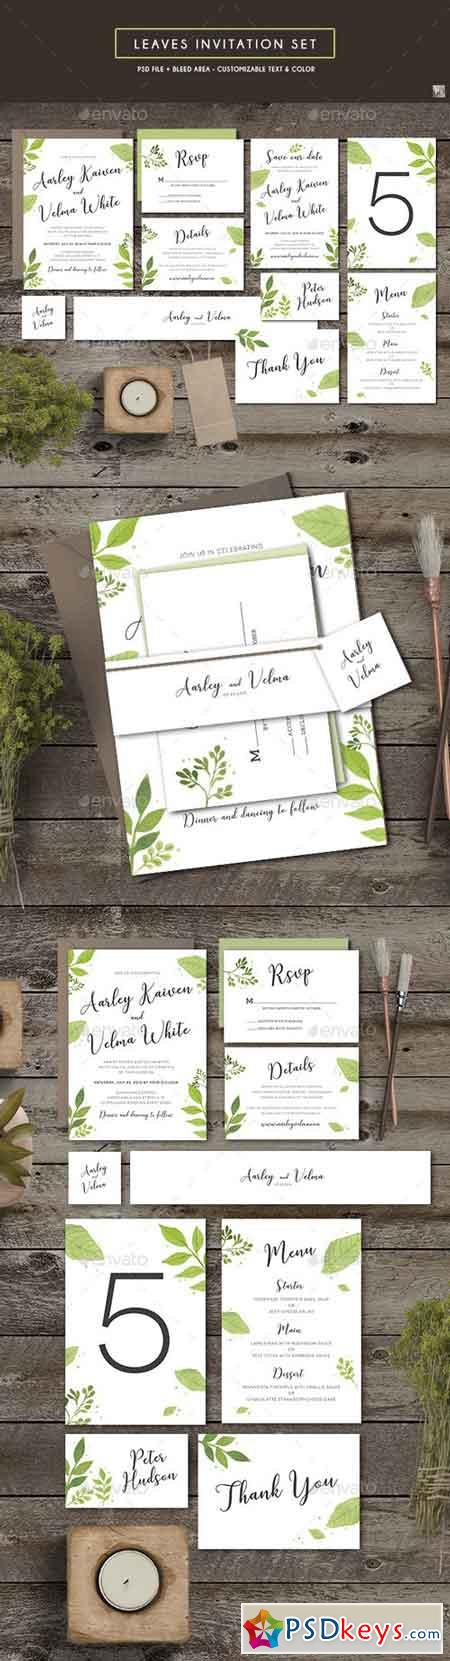 Leaves Invitation Set 19396183